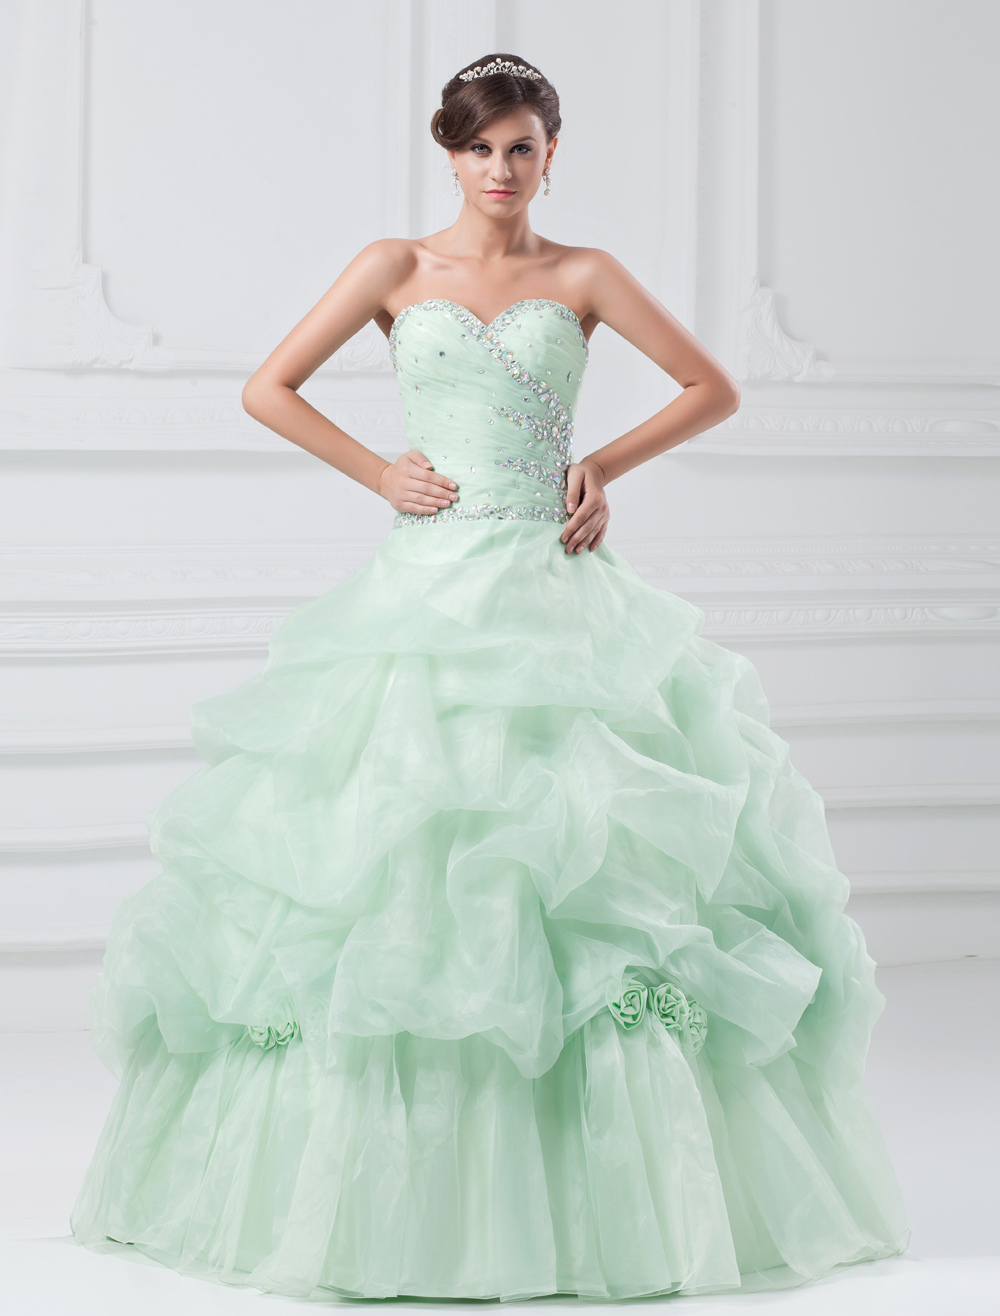 Green Tulle Rhinestone Sweetheart Neck Floor-Length Women's Prom Dress